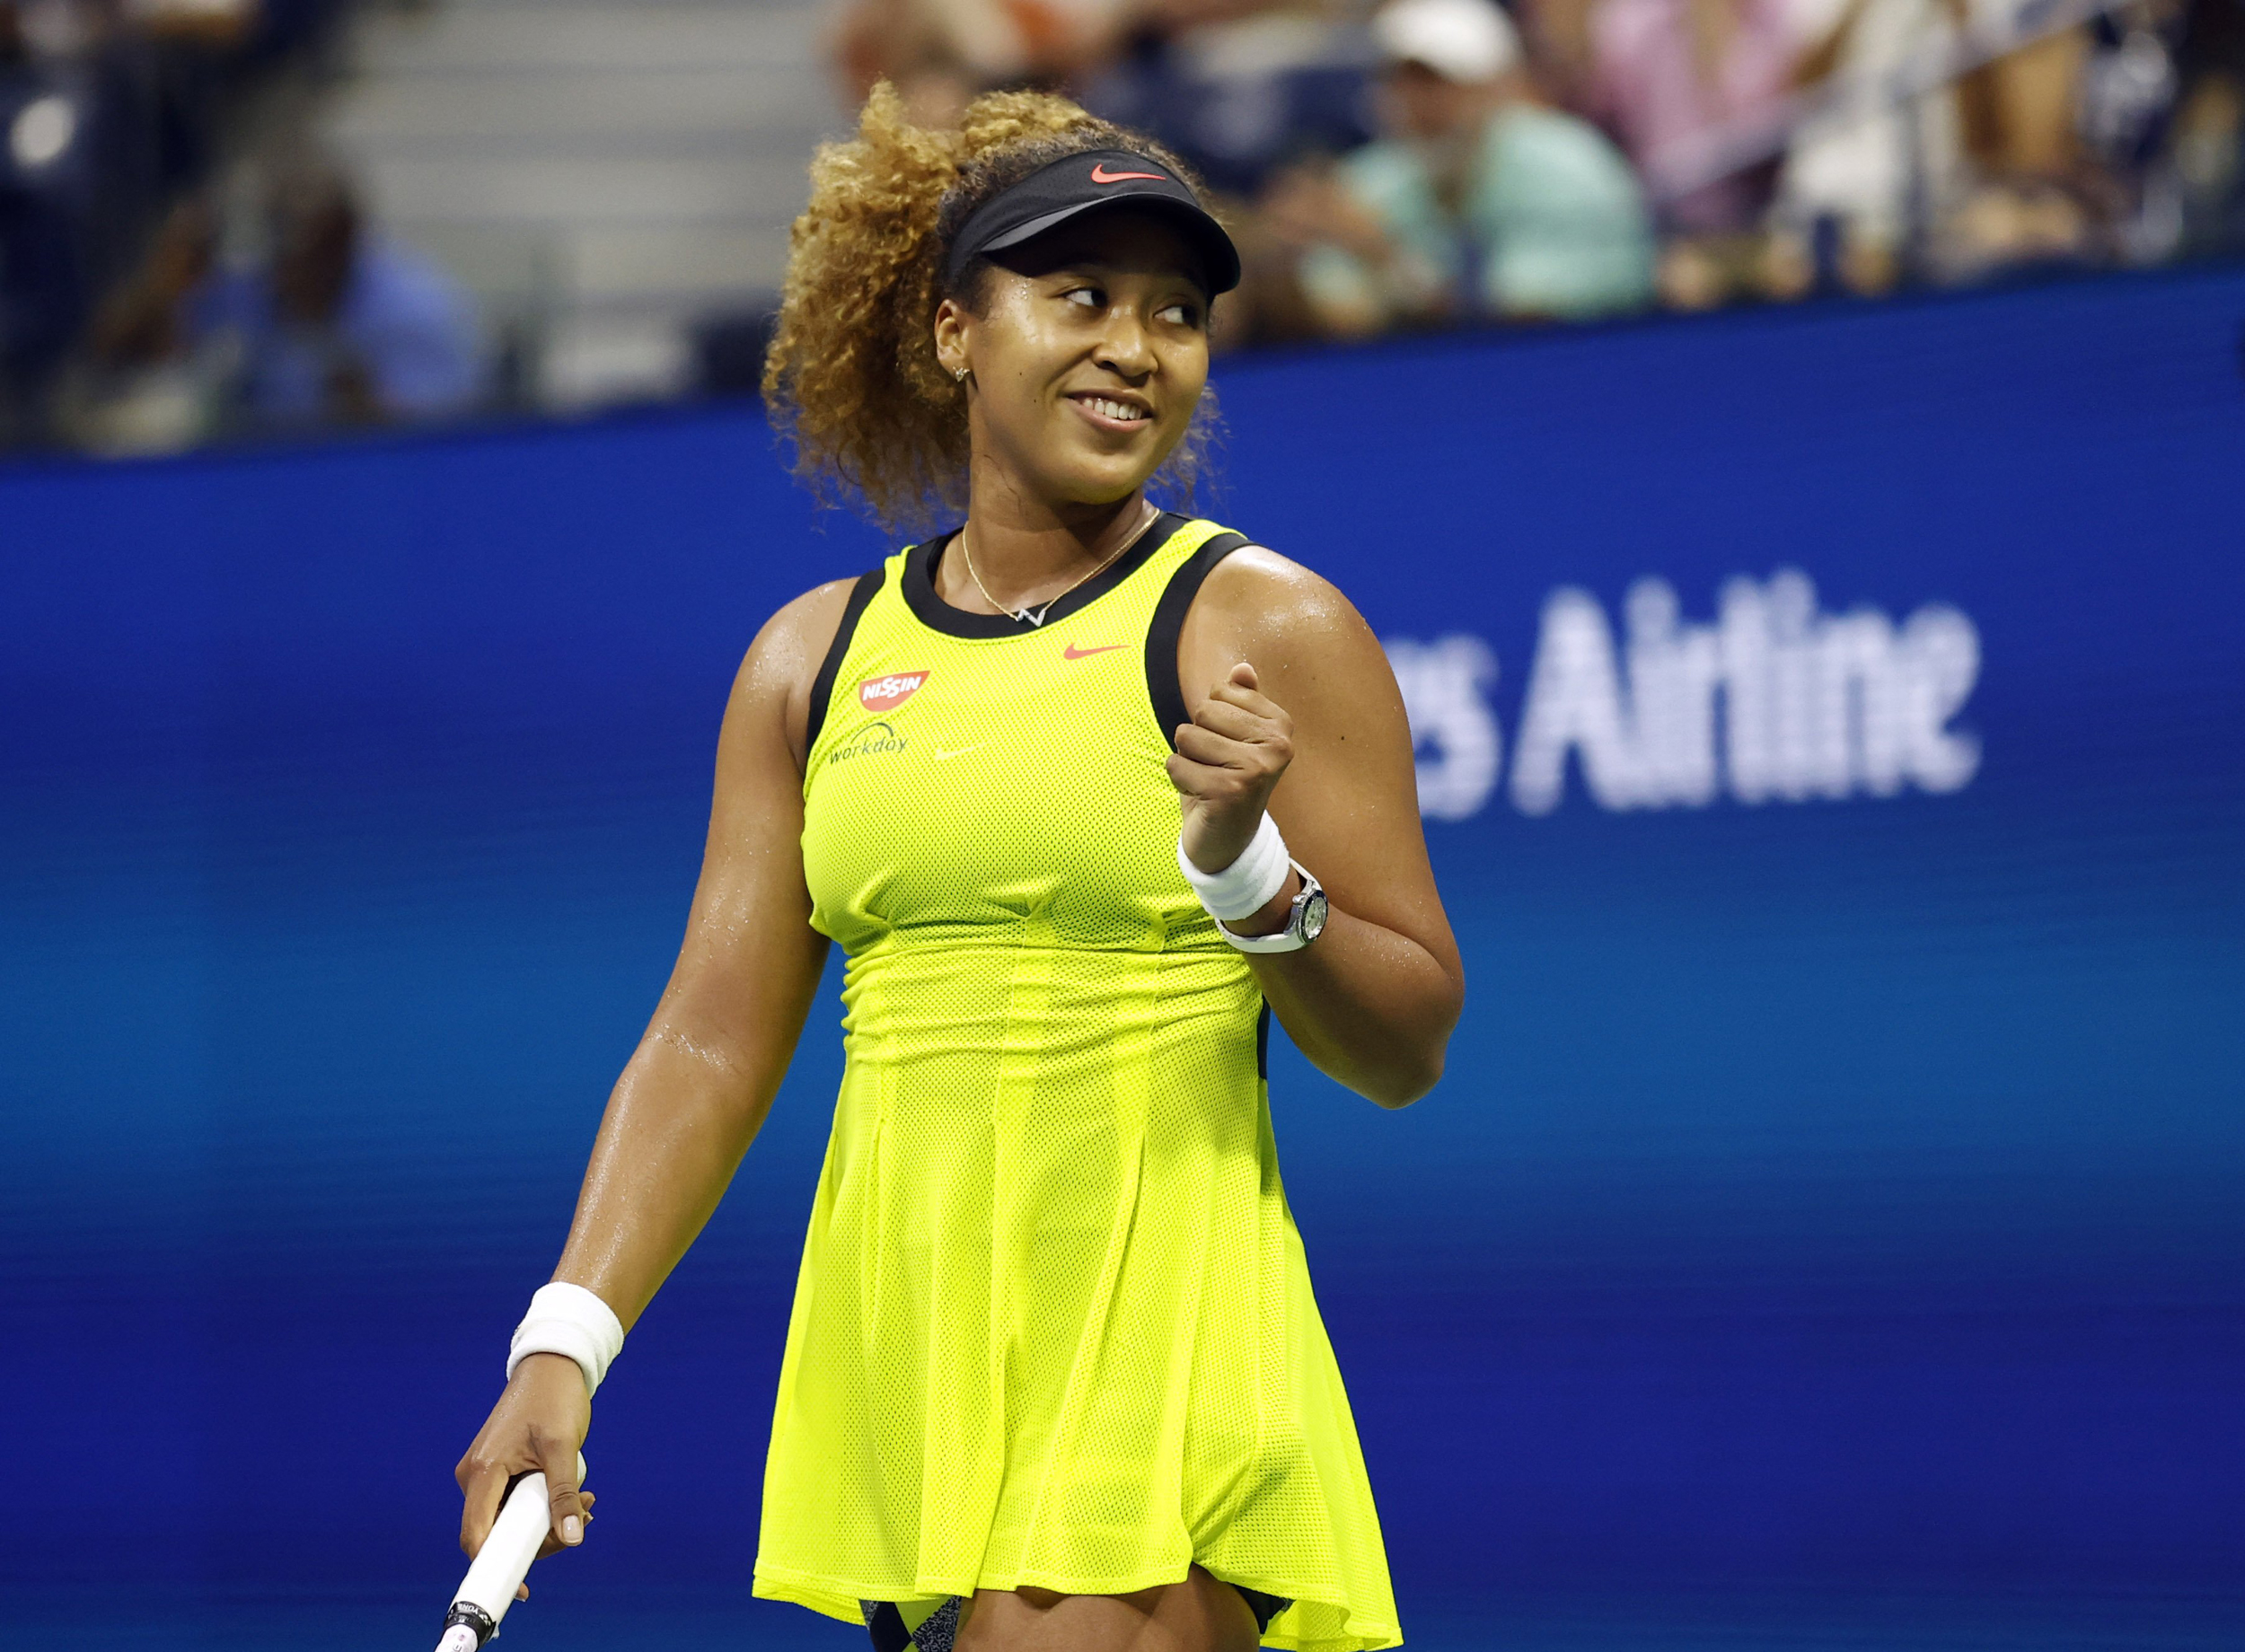 'I should believe more in myself': Naomi Osaka returns with first round win at U.S. Open